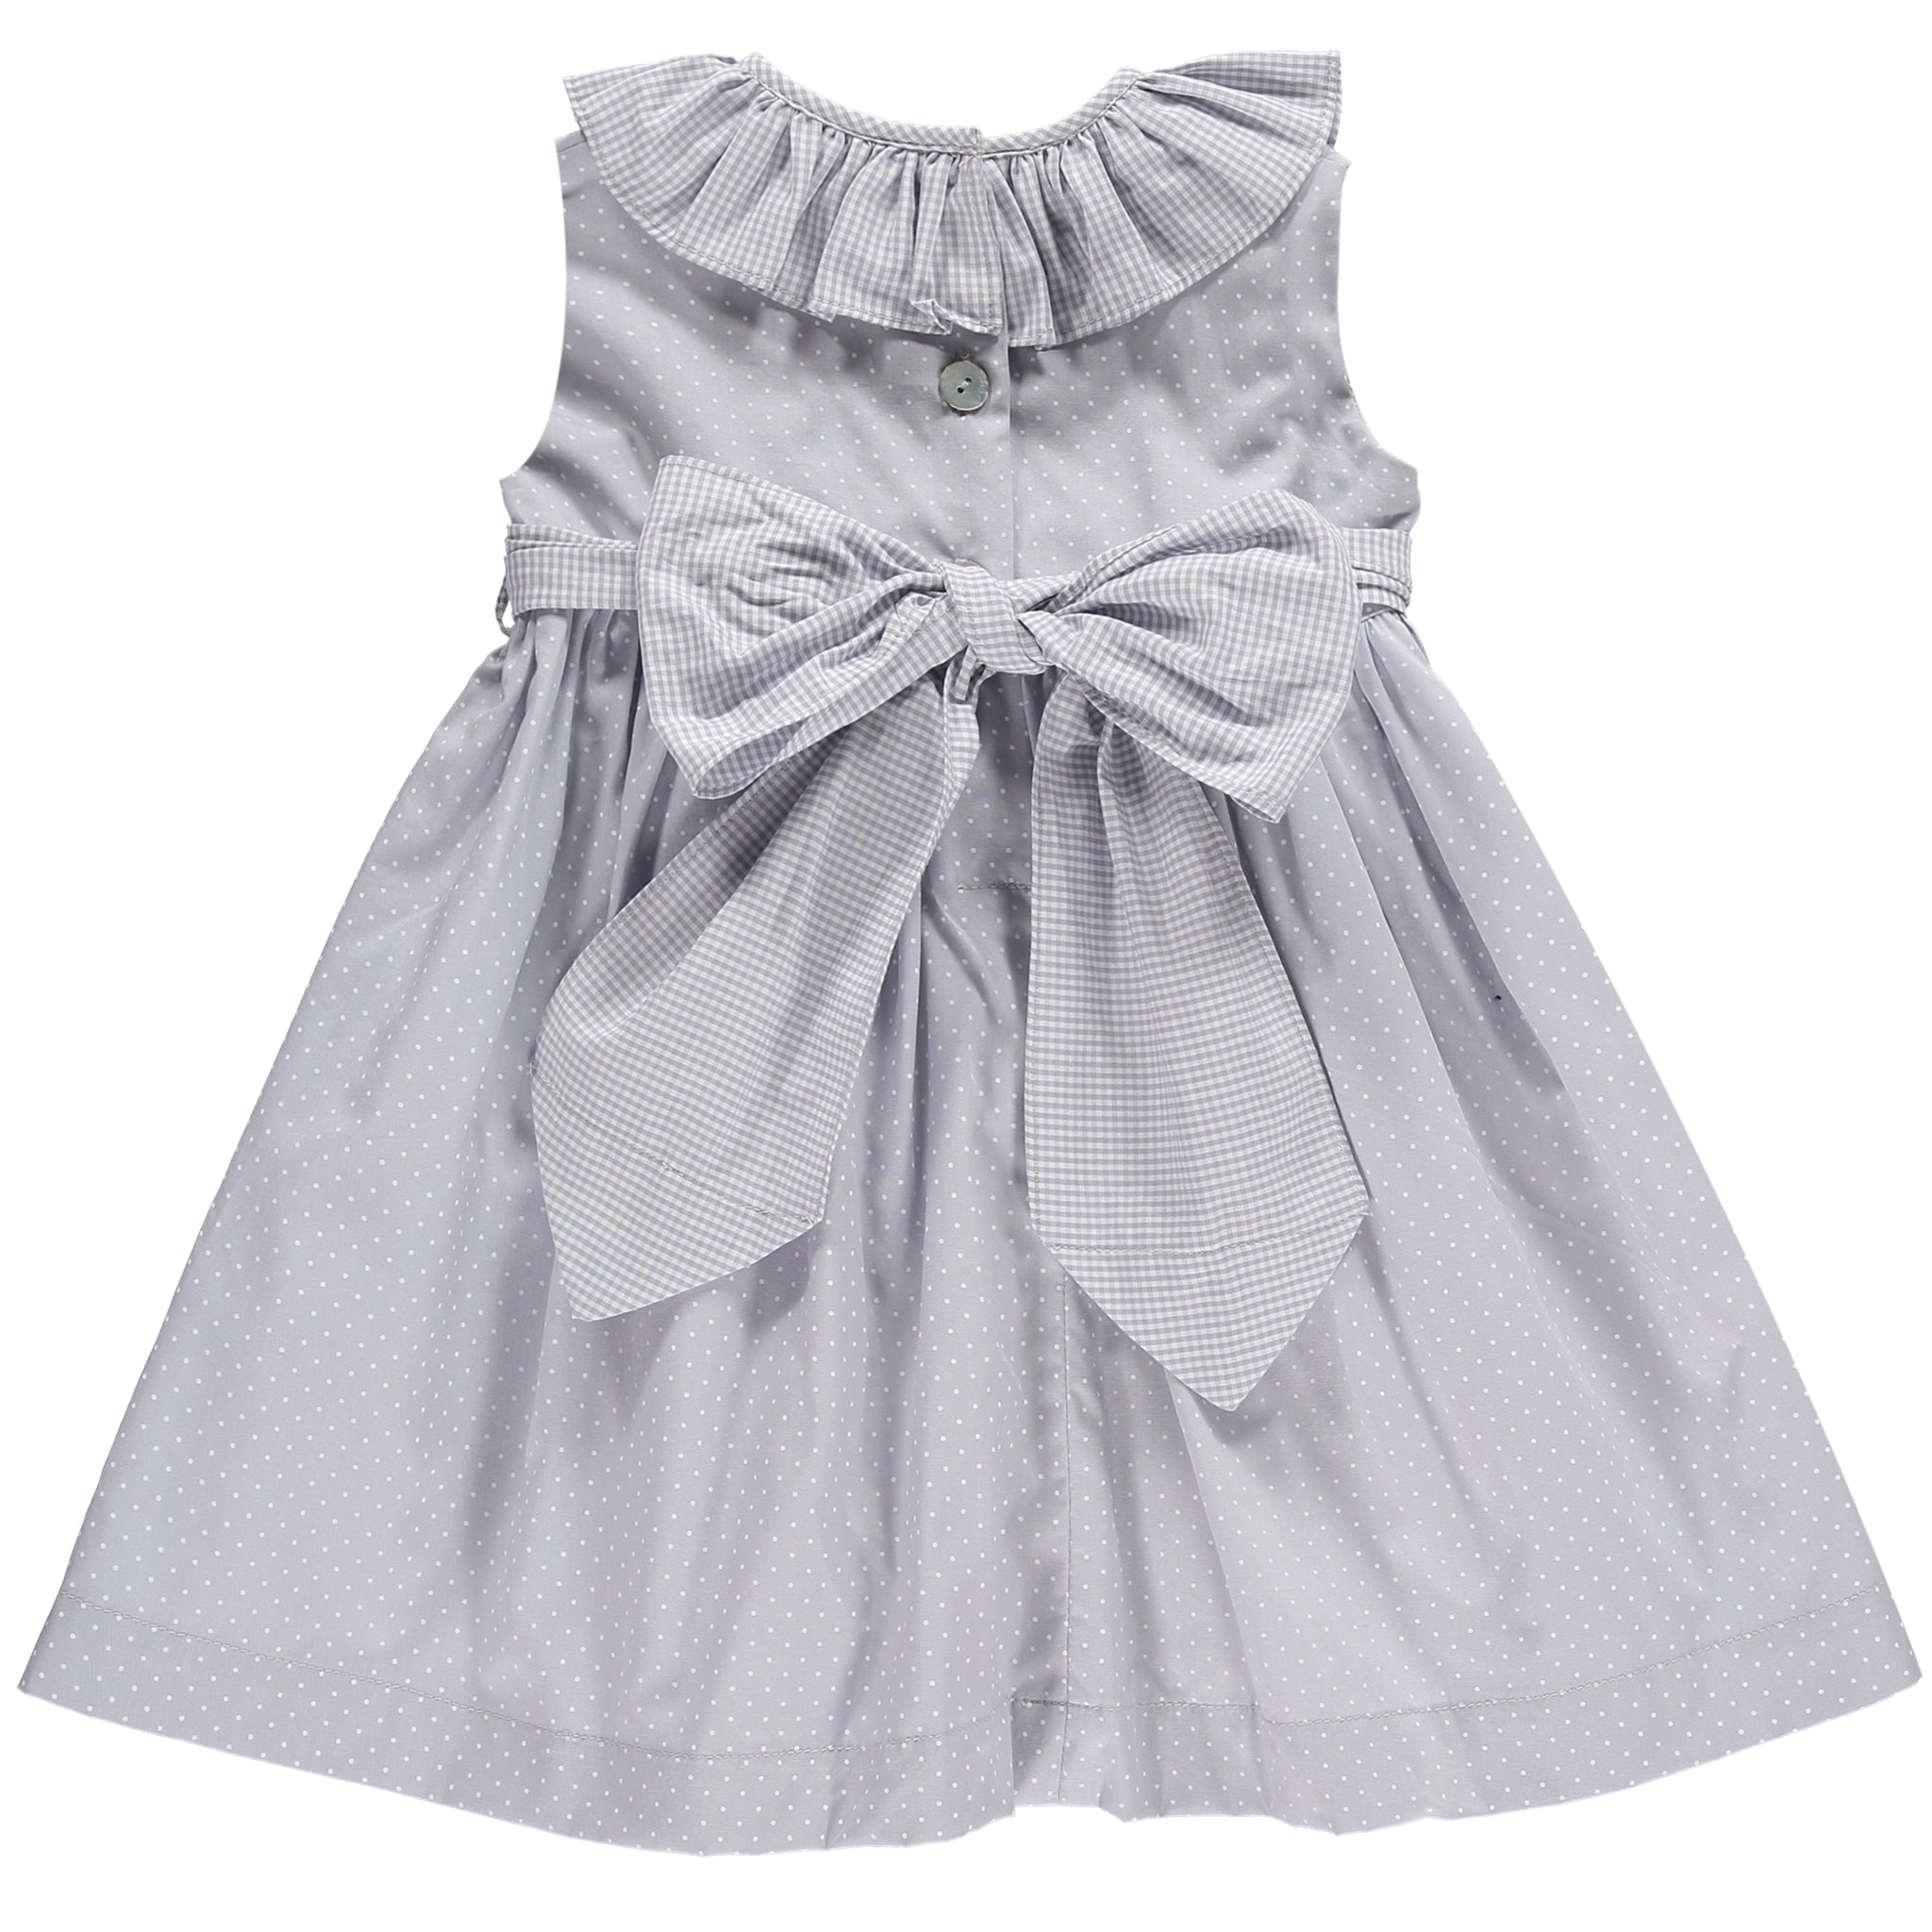 Classic Sweet Grey Dress